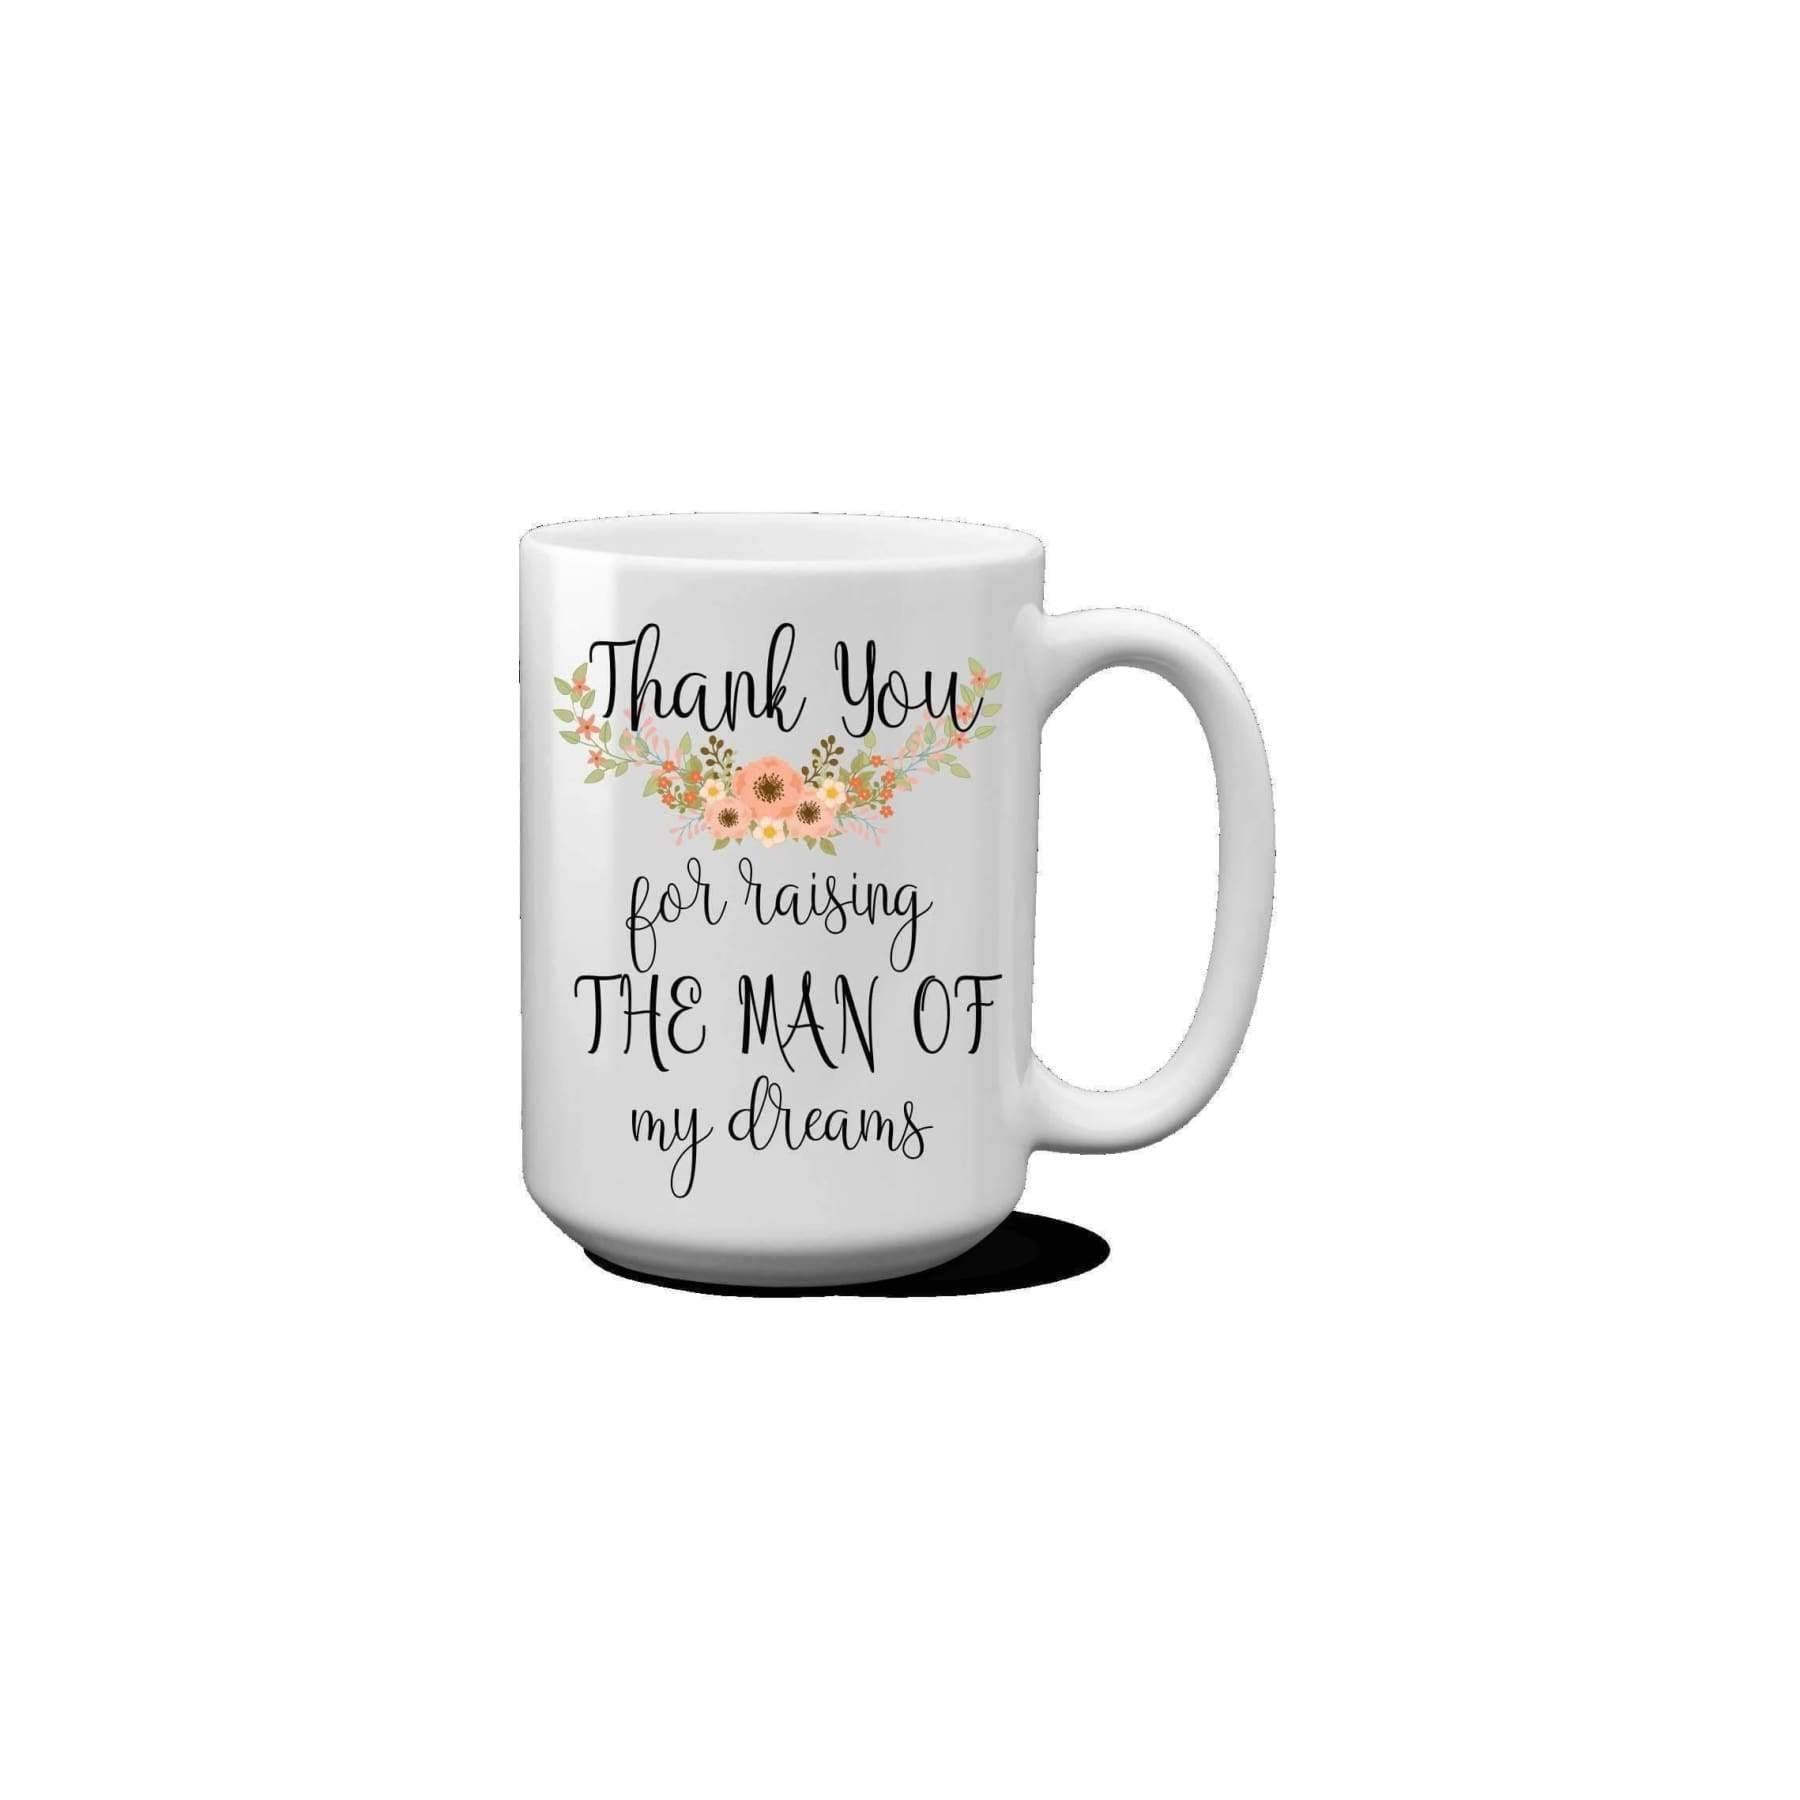 Thank You For Raising The Man Of My Dreams Mug.